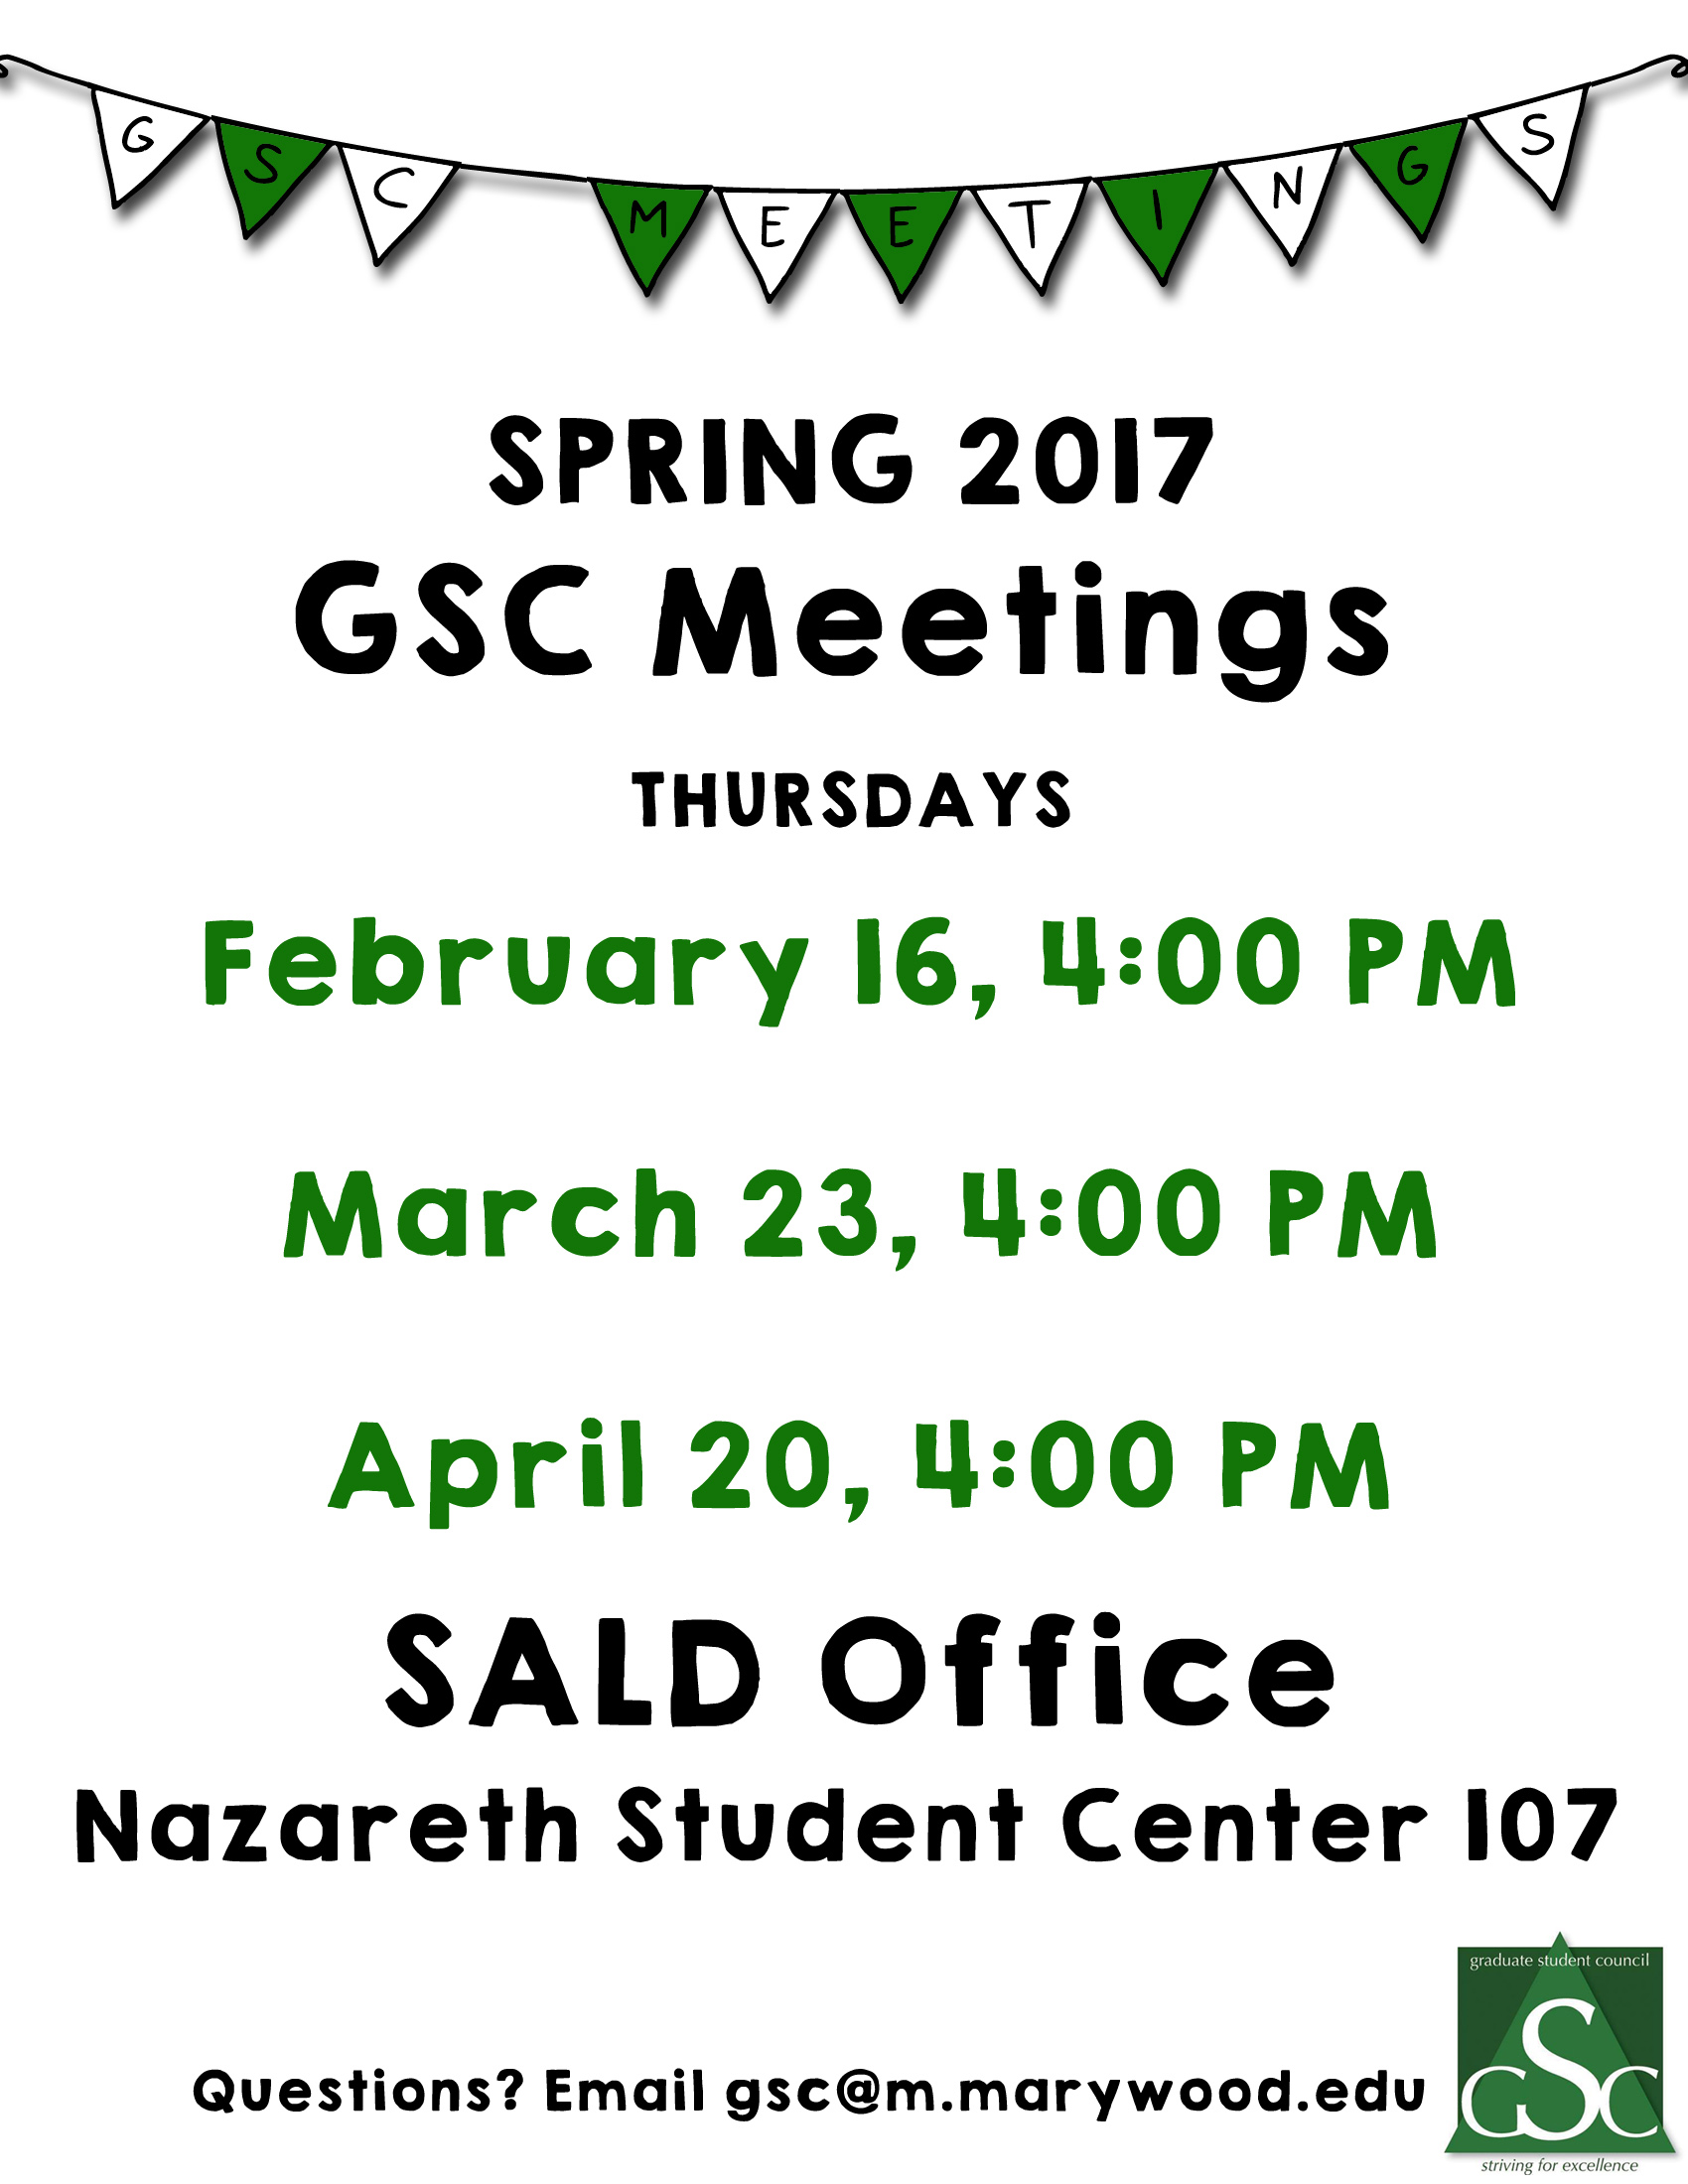 GSC Meetings - Spring 2017